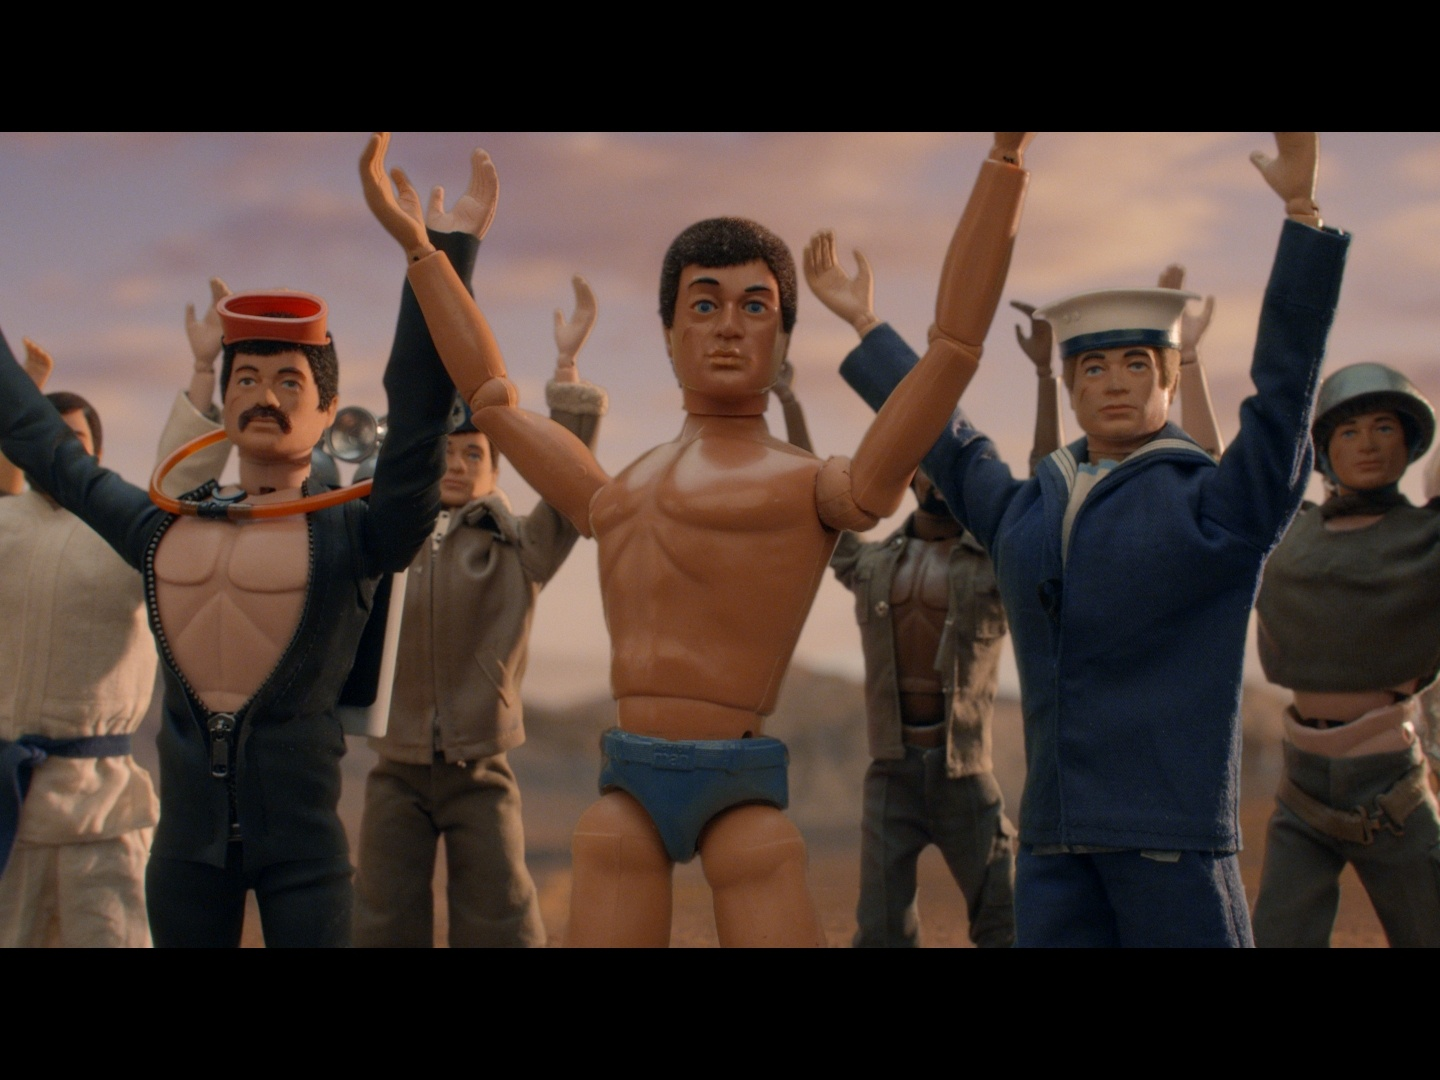 MoneySuperMarket.com 'Epic Action Man' Thumbnail